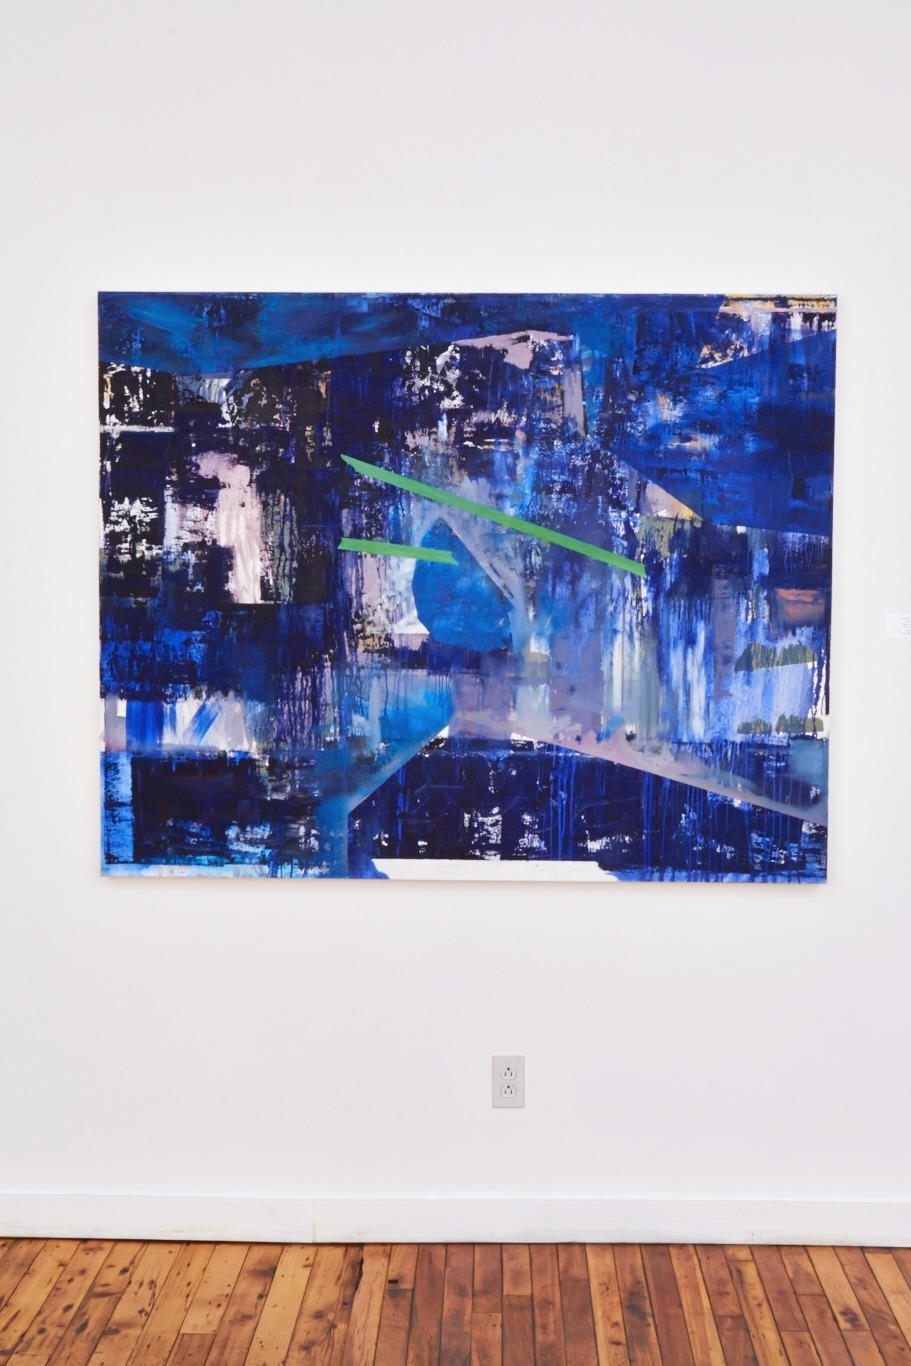 'Blu Luv' in the Act From Your Art exhib